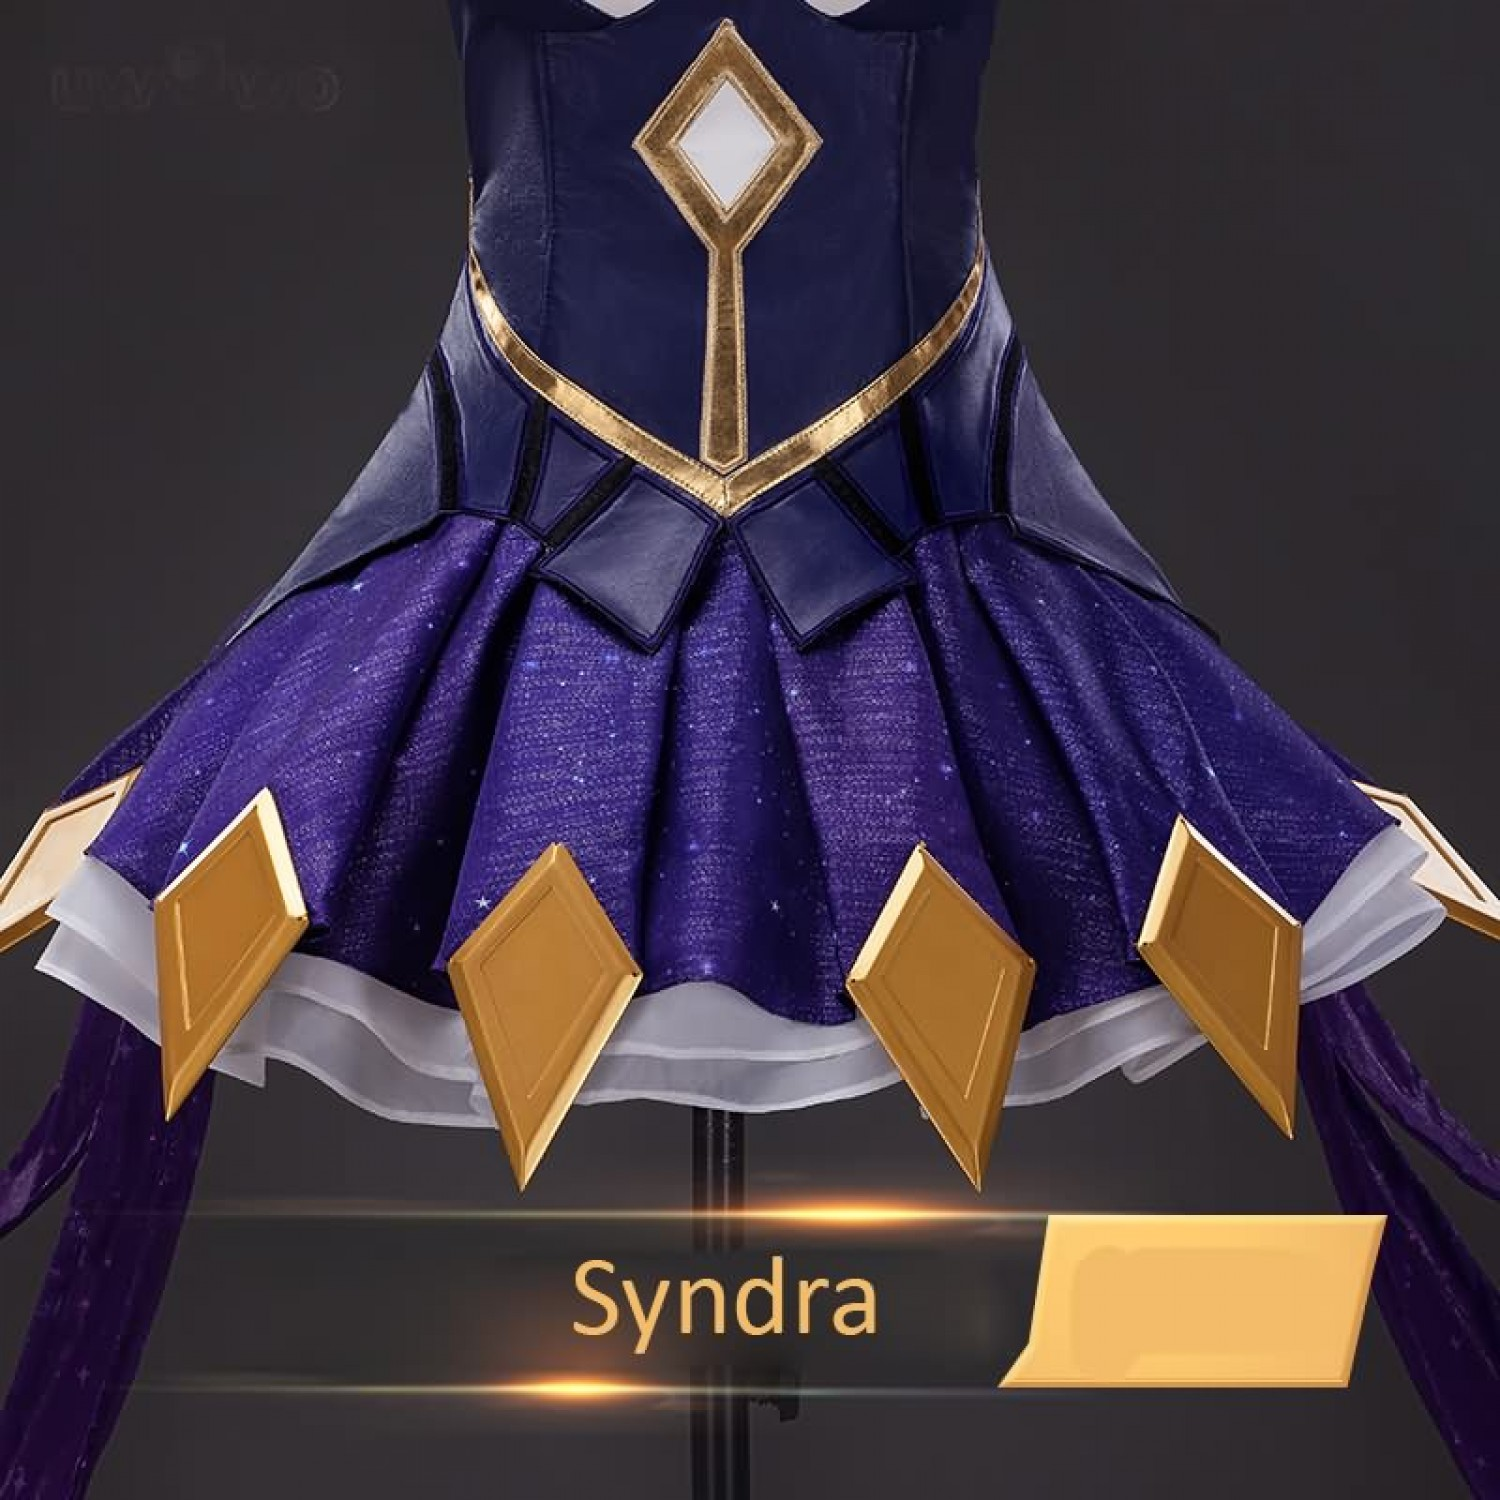 League of Legends LOL Star Guardian Syndra Game Women Cosplay Costume